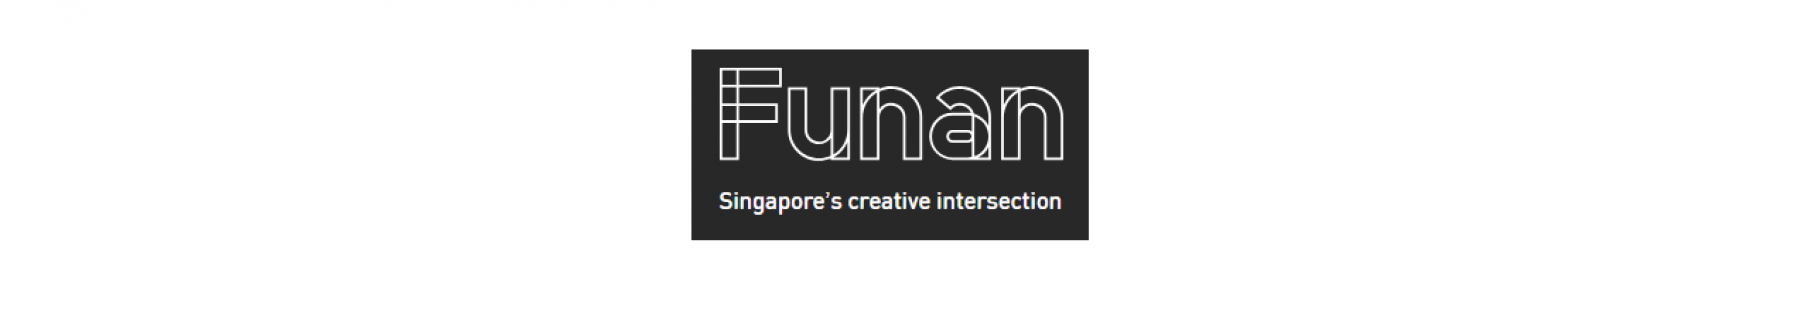 Let's share photos! Free photo sharing event at Funan Showsuite starting at High Street, Funan Showsuite, Singapore